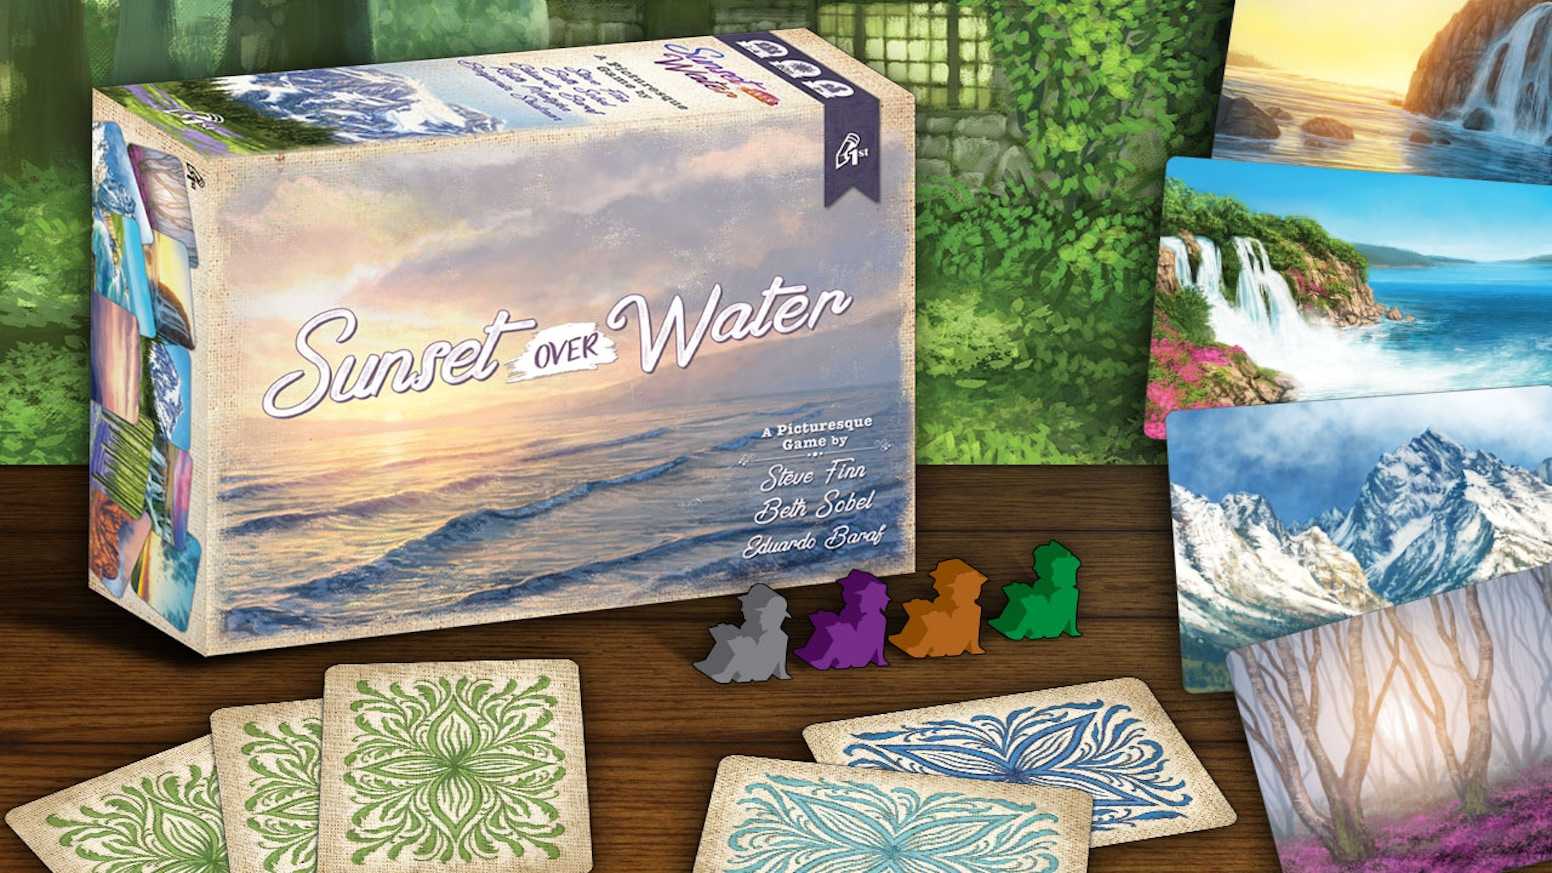 A picturesque game for 1 to 4 players by the Herbaceous team. Simple to teach, easy to learn, and always beautiful.